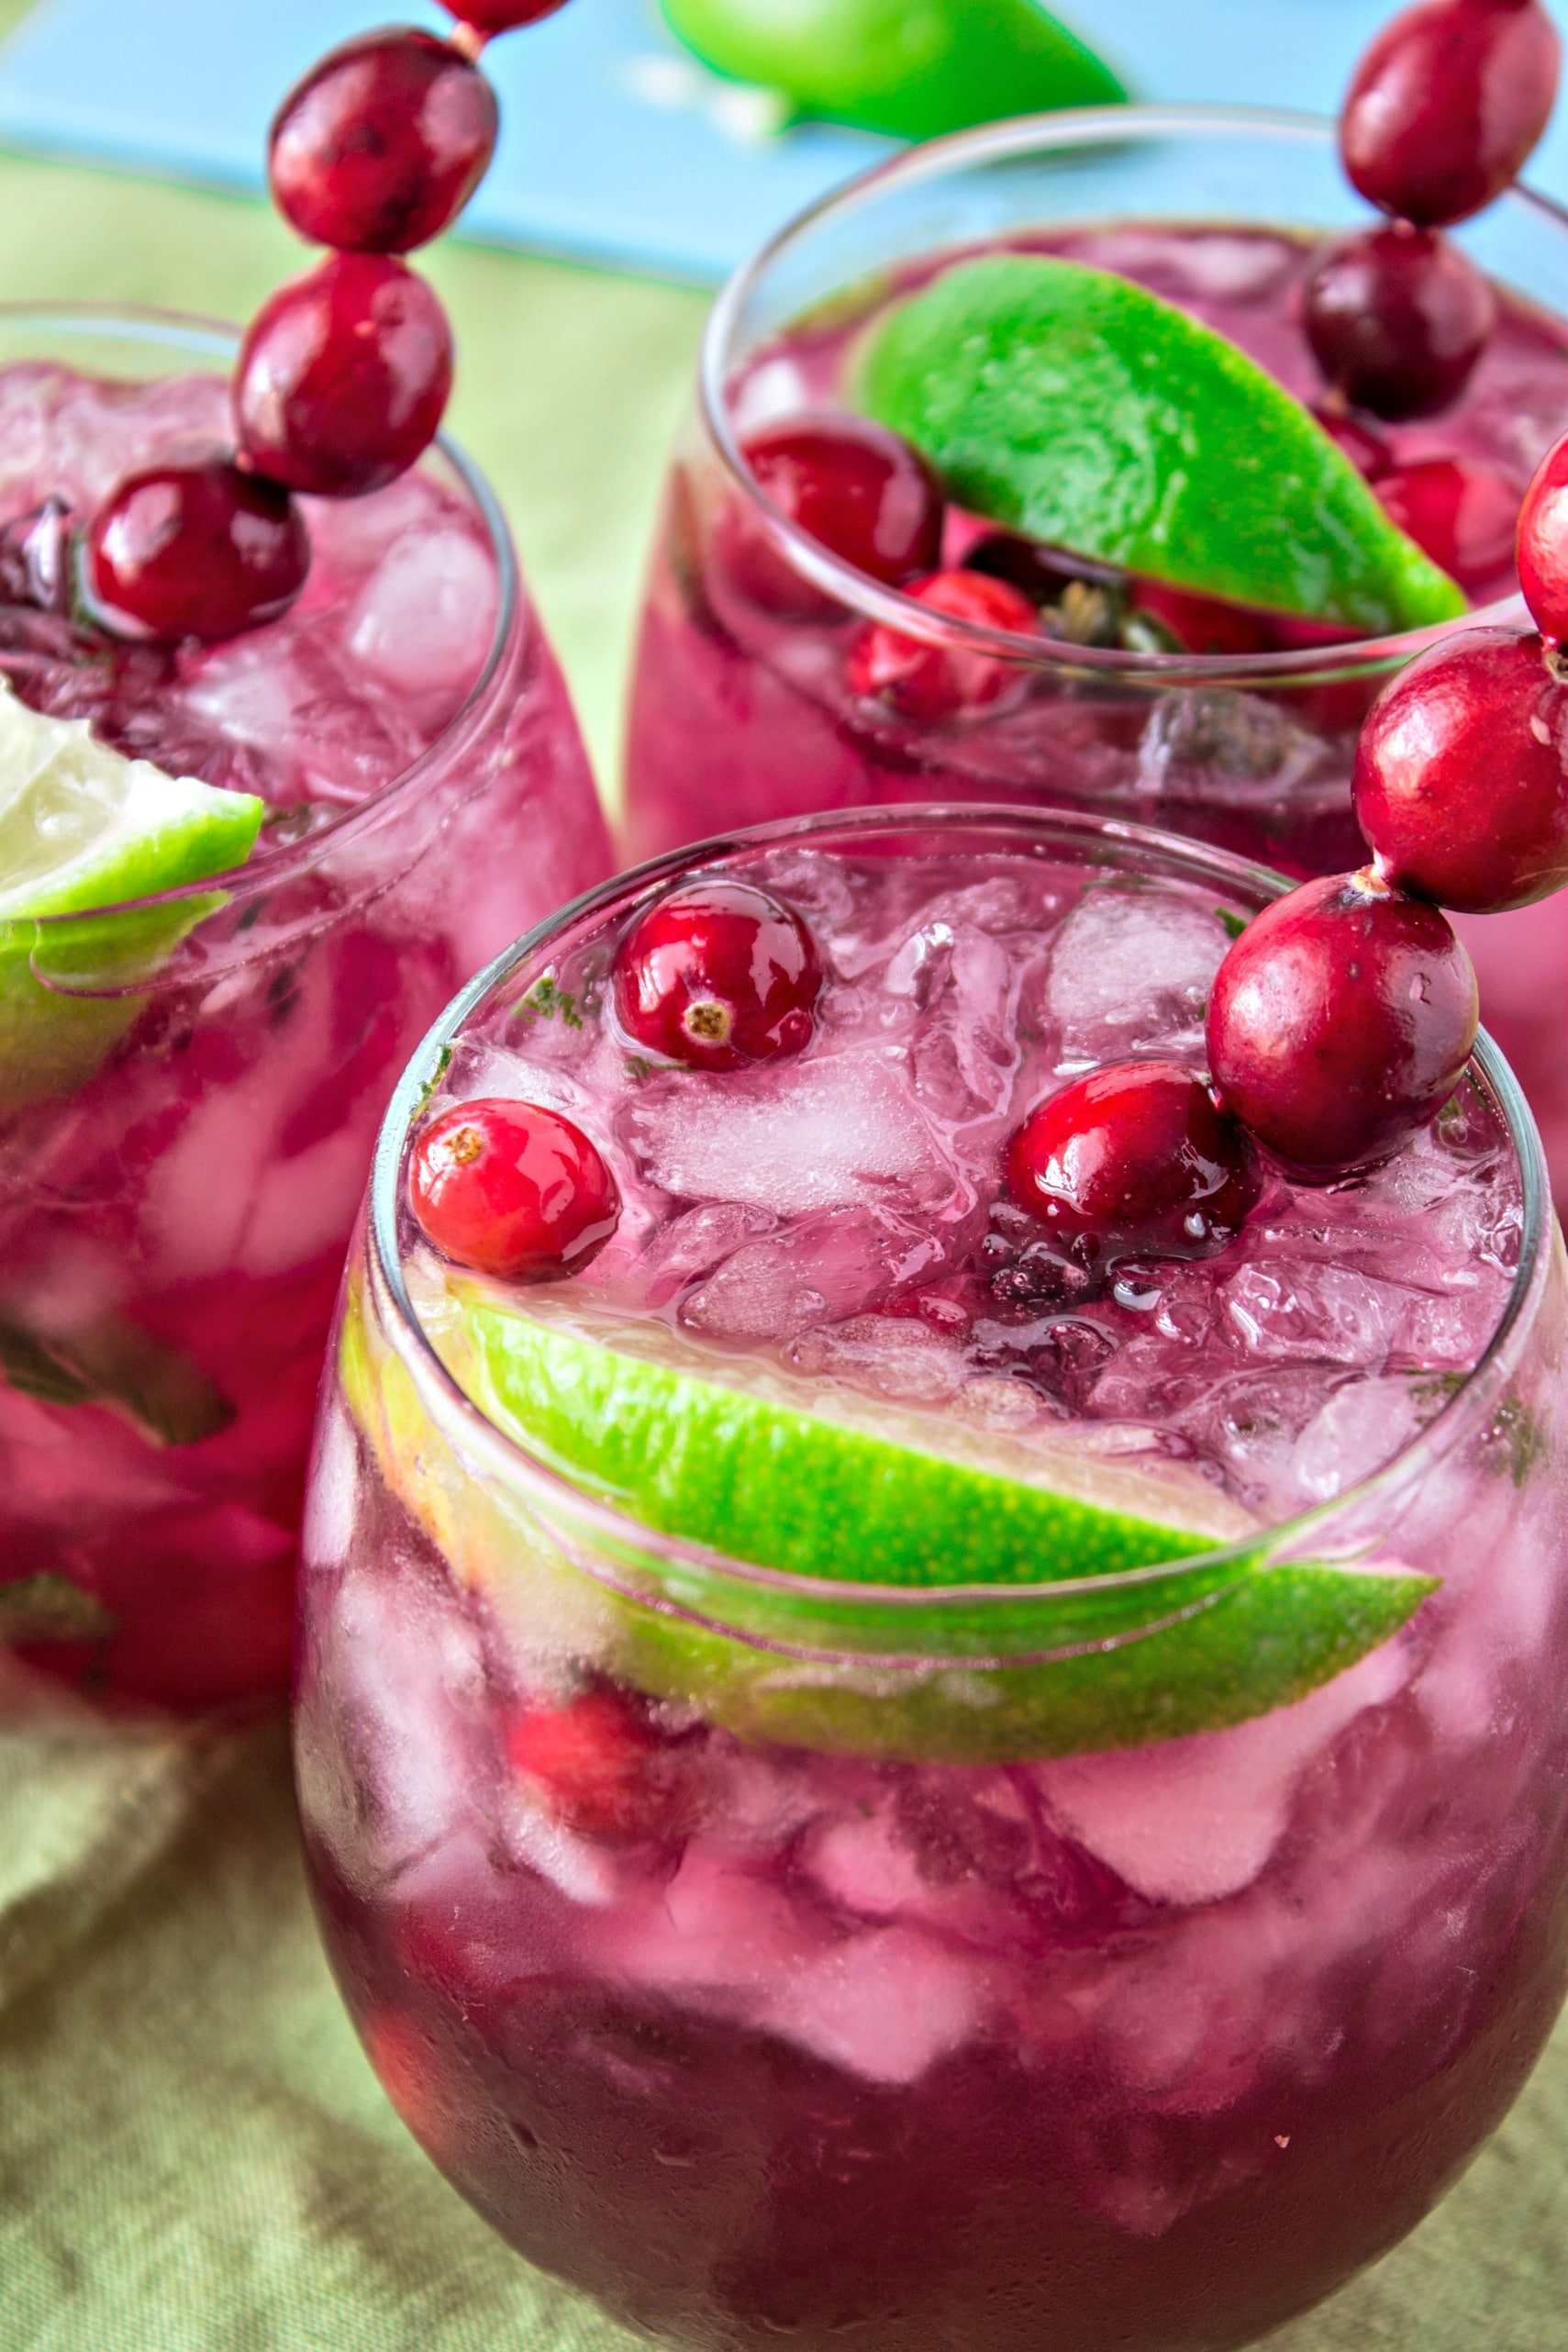 Cranberry Lime Mojitos - A festive twist on this classic drink. Mint, sugar, lime, cranberry juice, and rum come together to make this yummy drink that perfectly highlights the winter flavor of cranberry but can be made all year long!